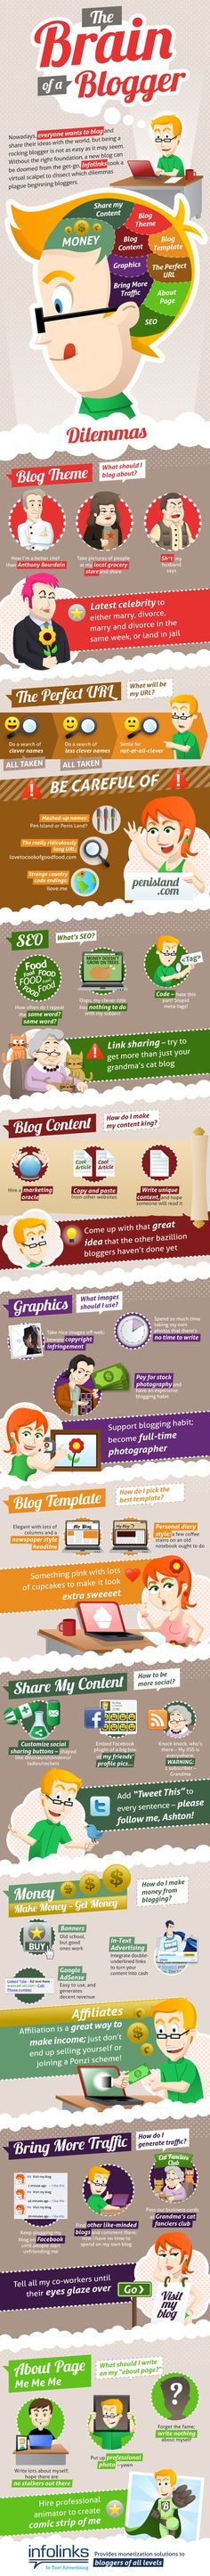 The Brain of a Blogger - A fun #infographic on all of the thinking behind #blogging